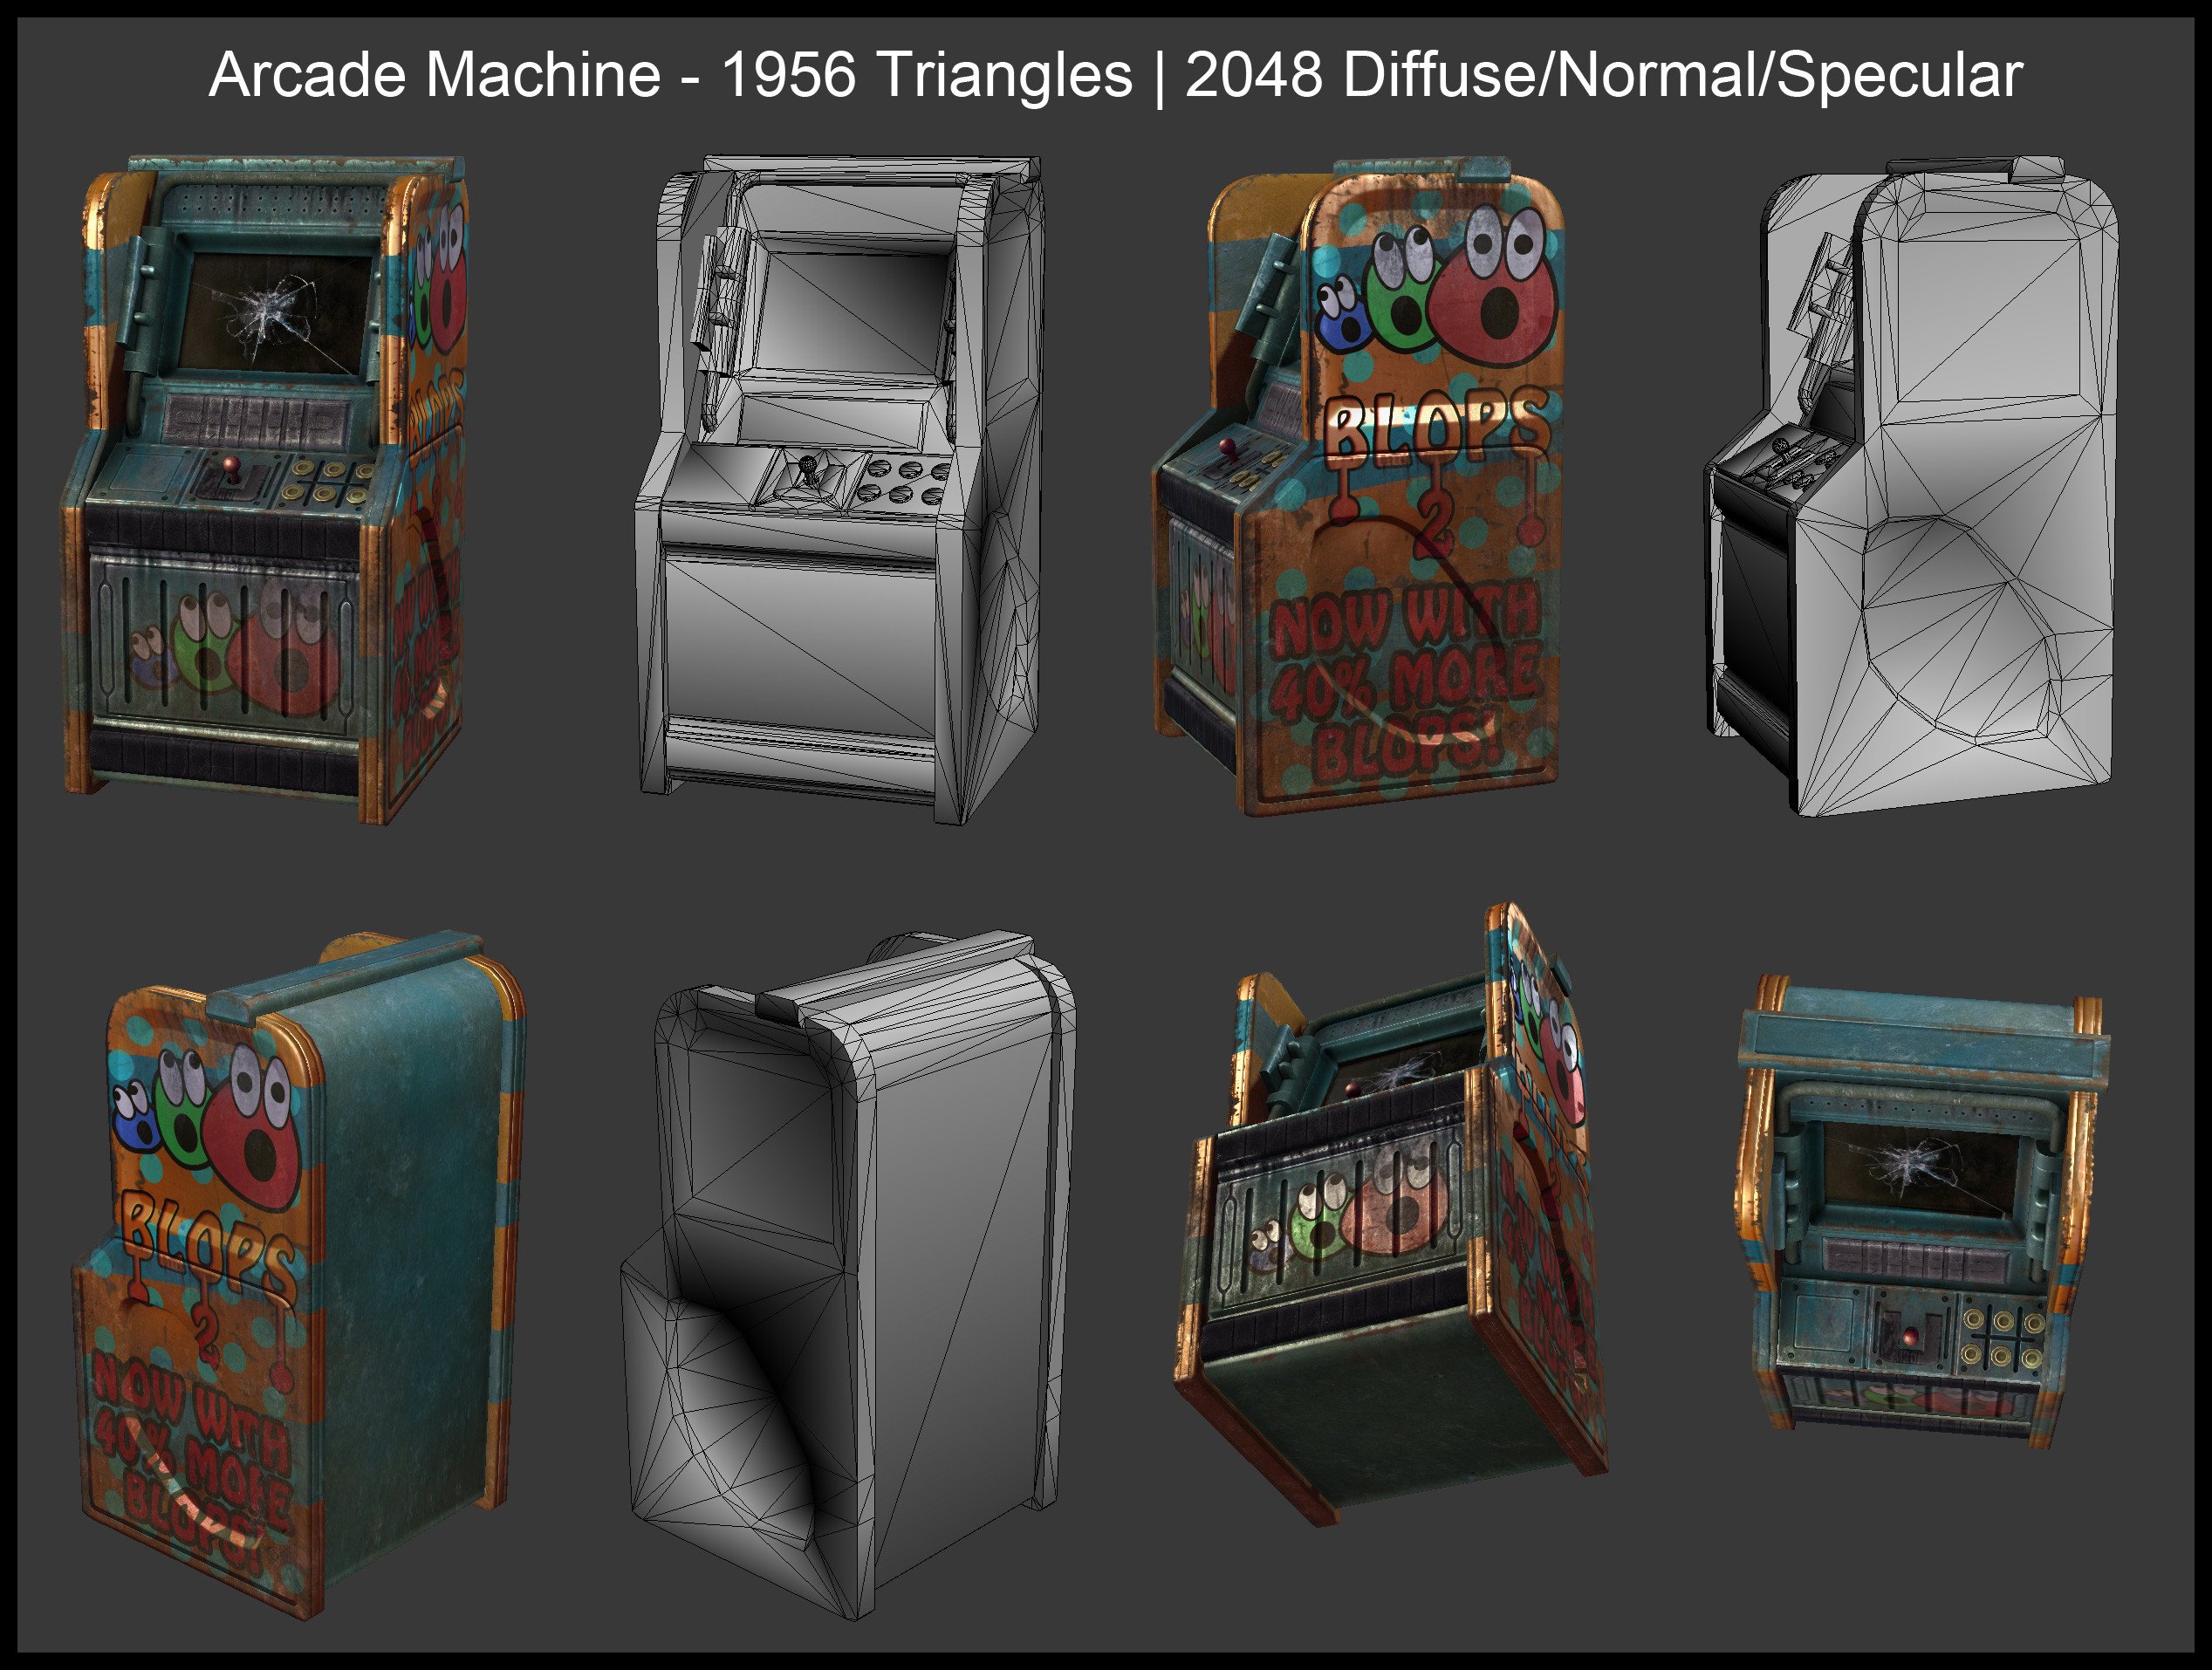 BLOPS arcade machine. BLOPS used to be the industry leader but now lags behind Forknife and PubeG.